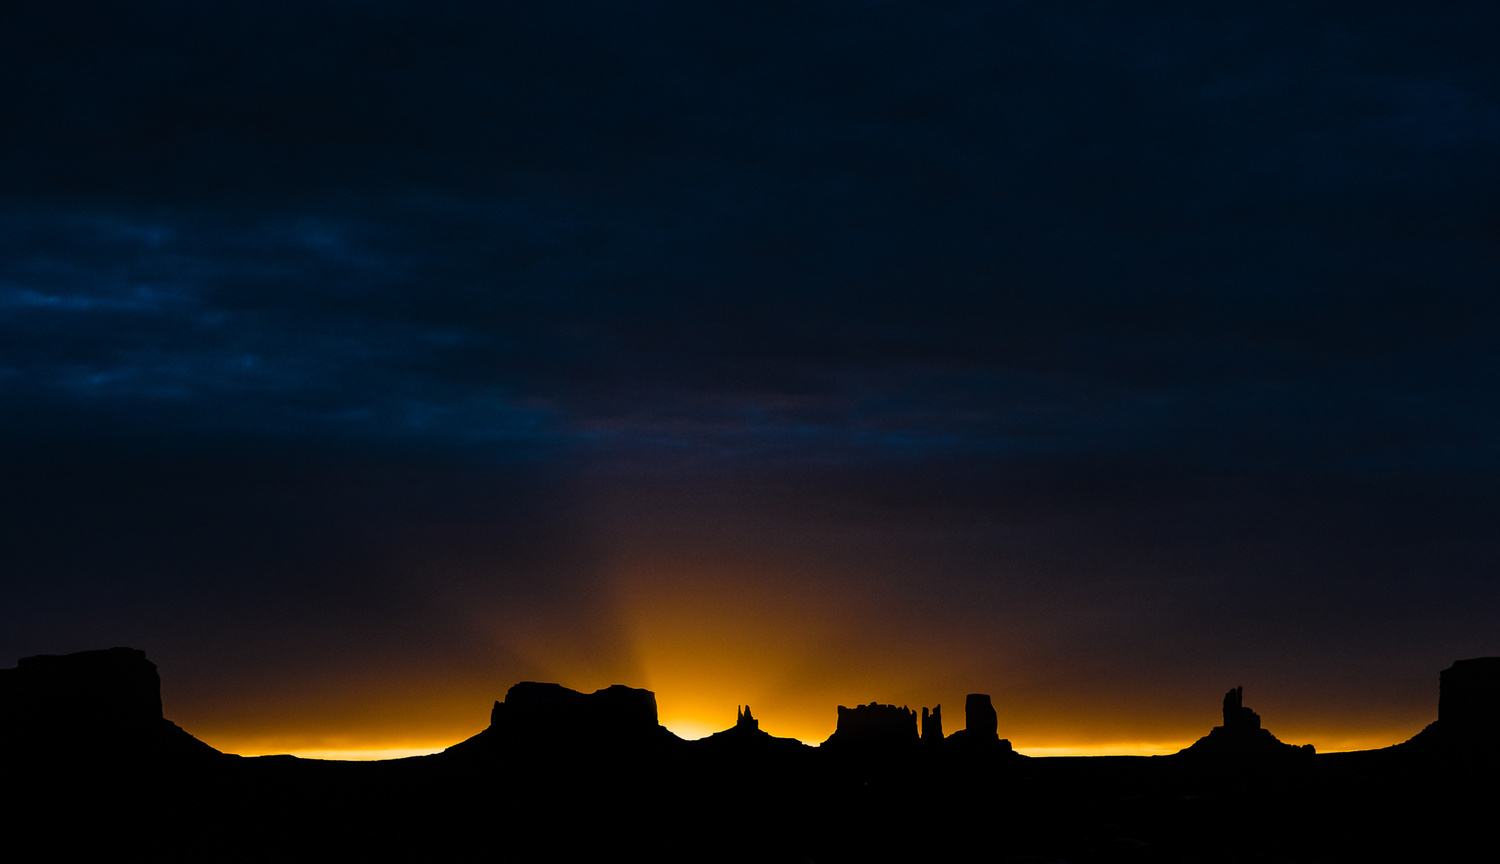 Monument Valley 2 by Don Risi